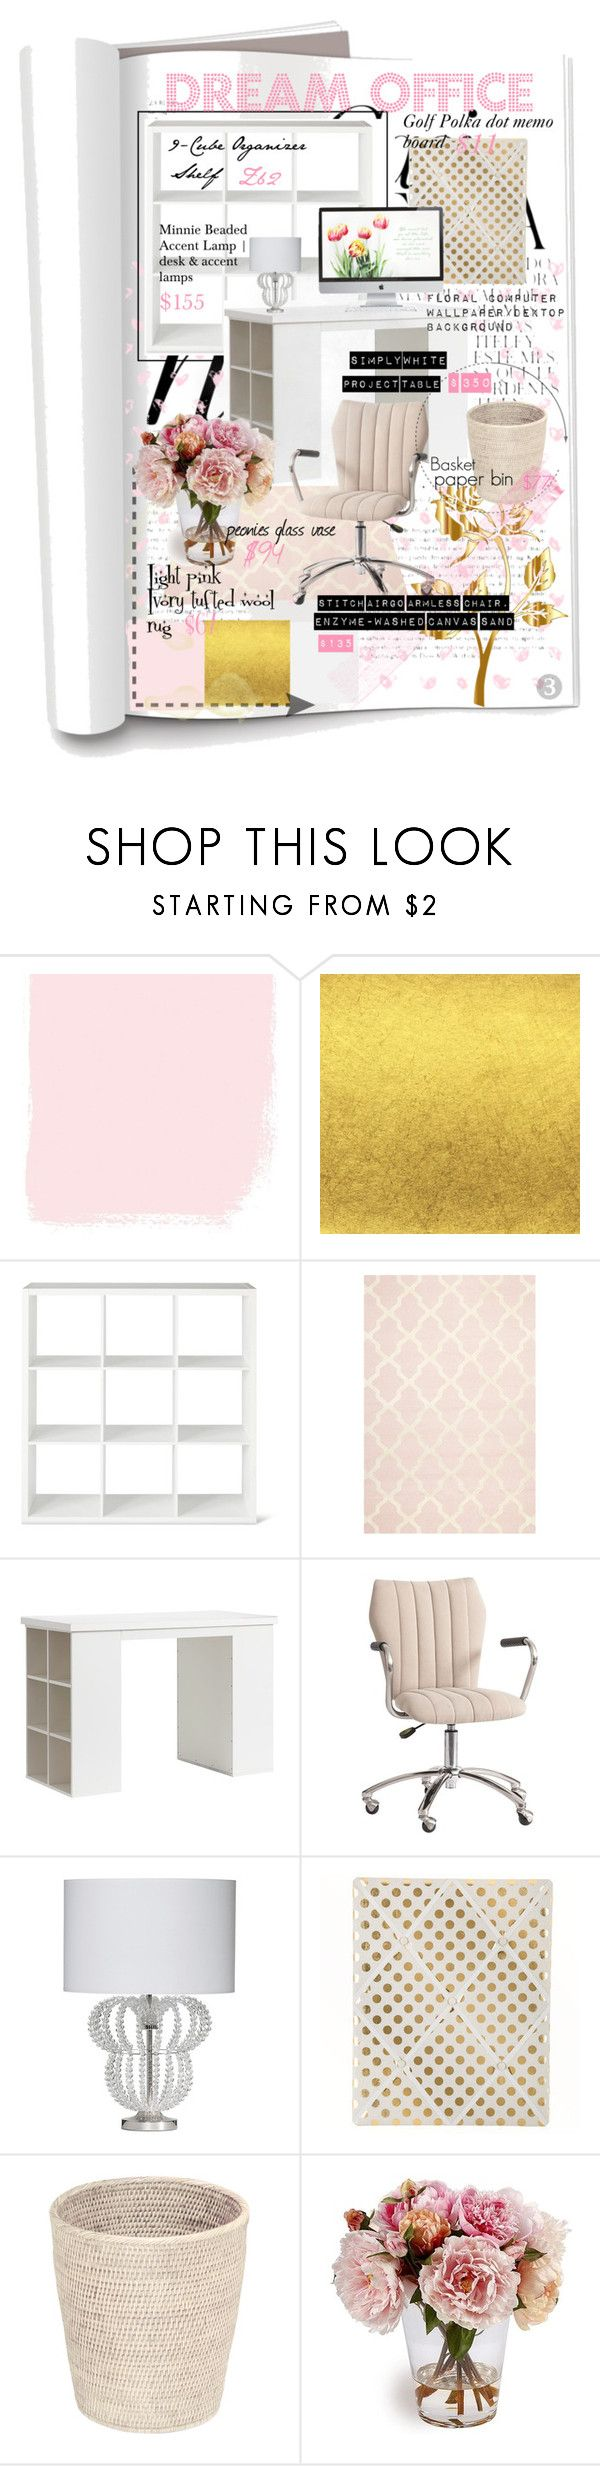 Threshold home decor shop for threshold home decor on polyvore -  Dream Office By Mhollins29 On Polyvore Featuring Interior Interiors Interior Design